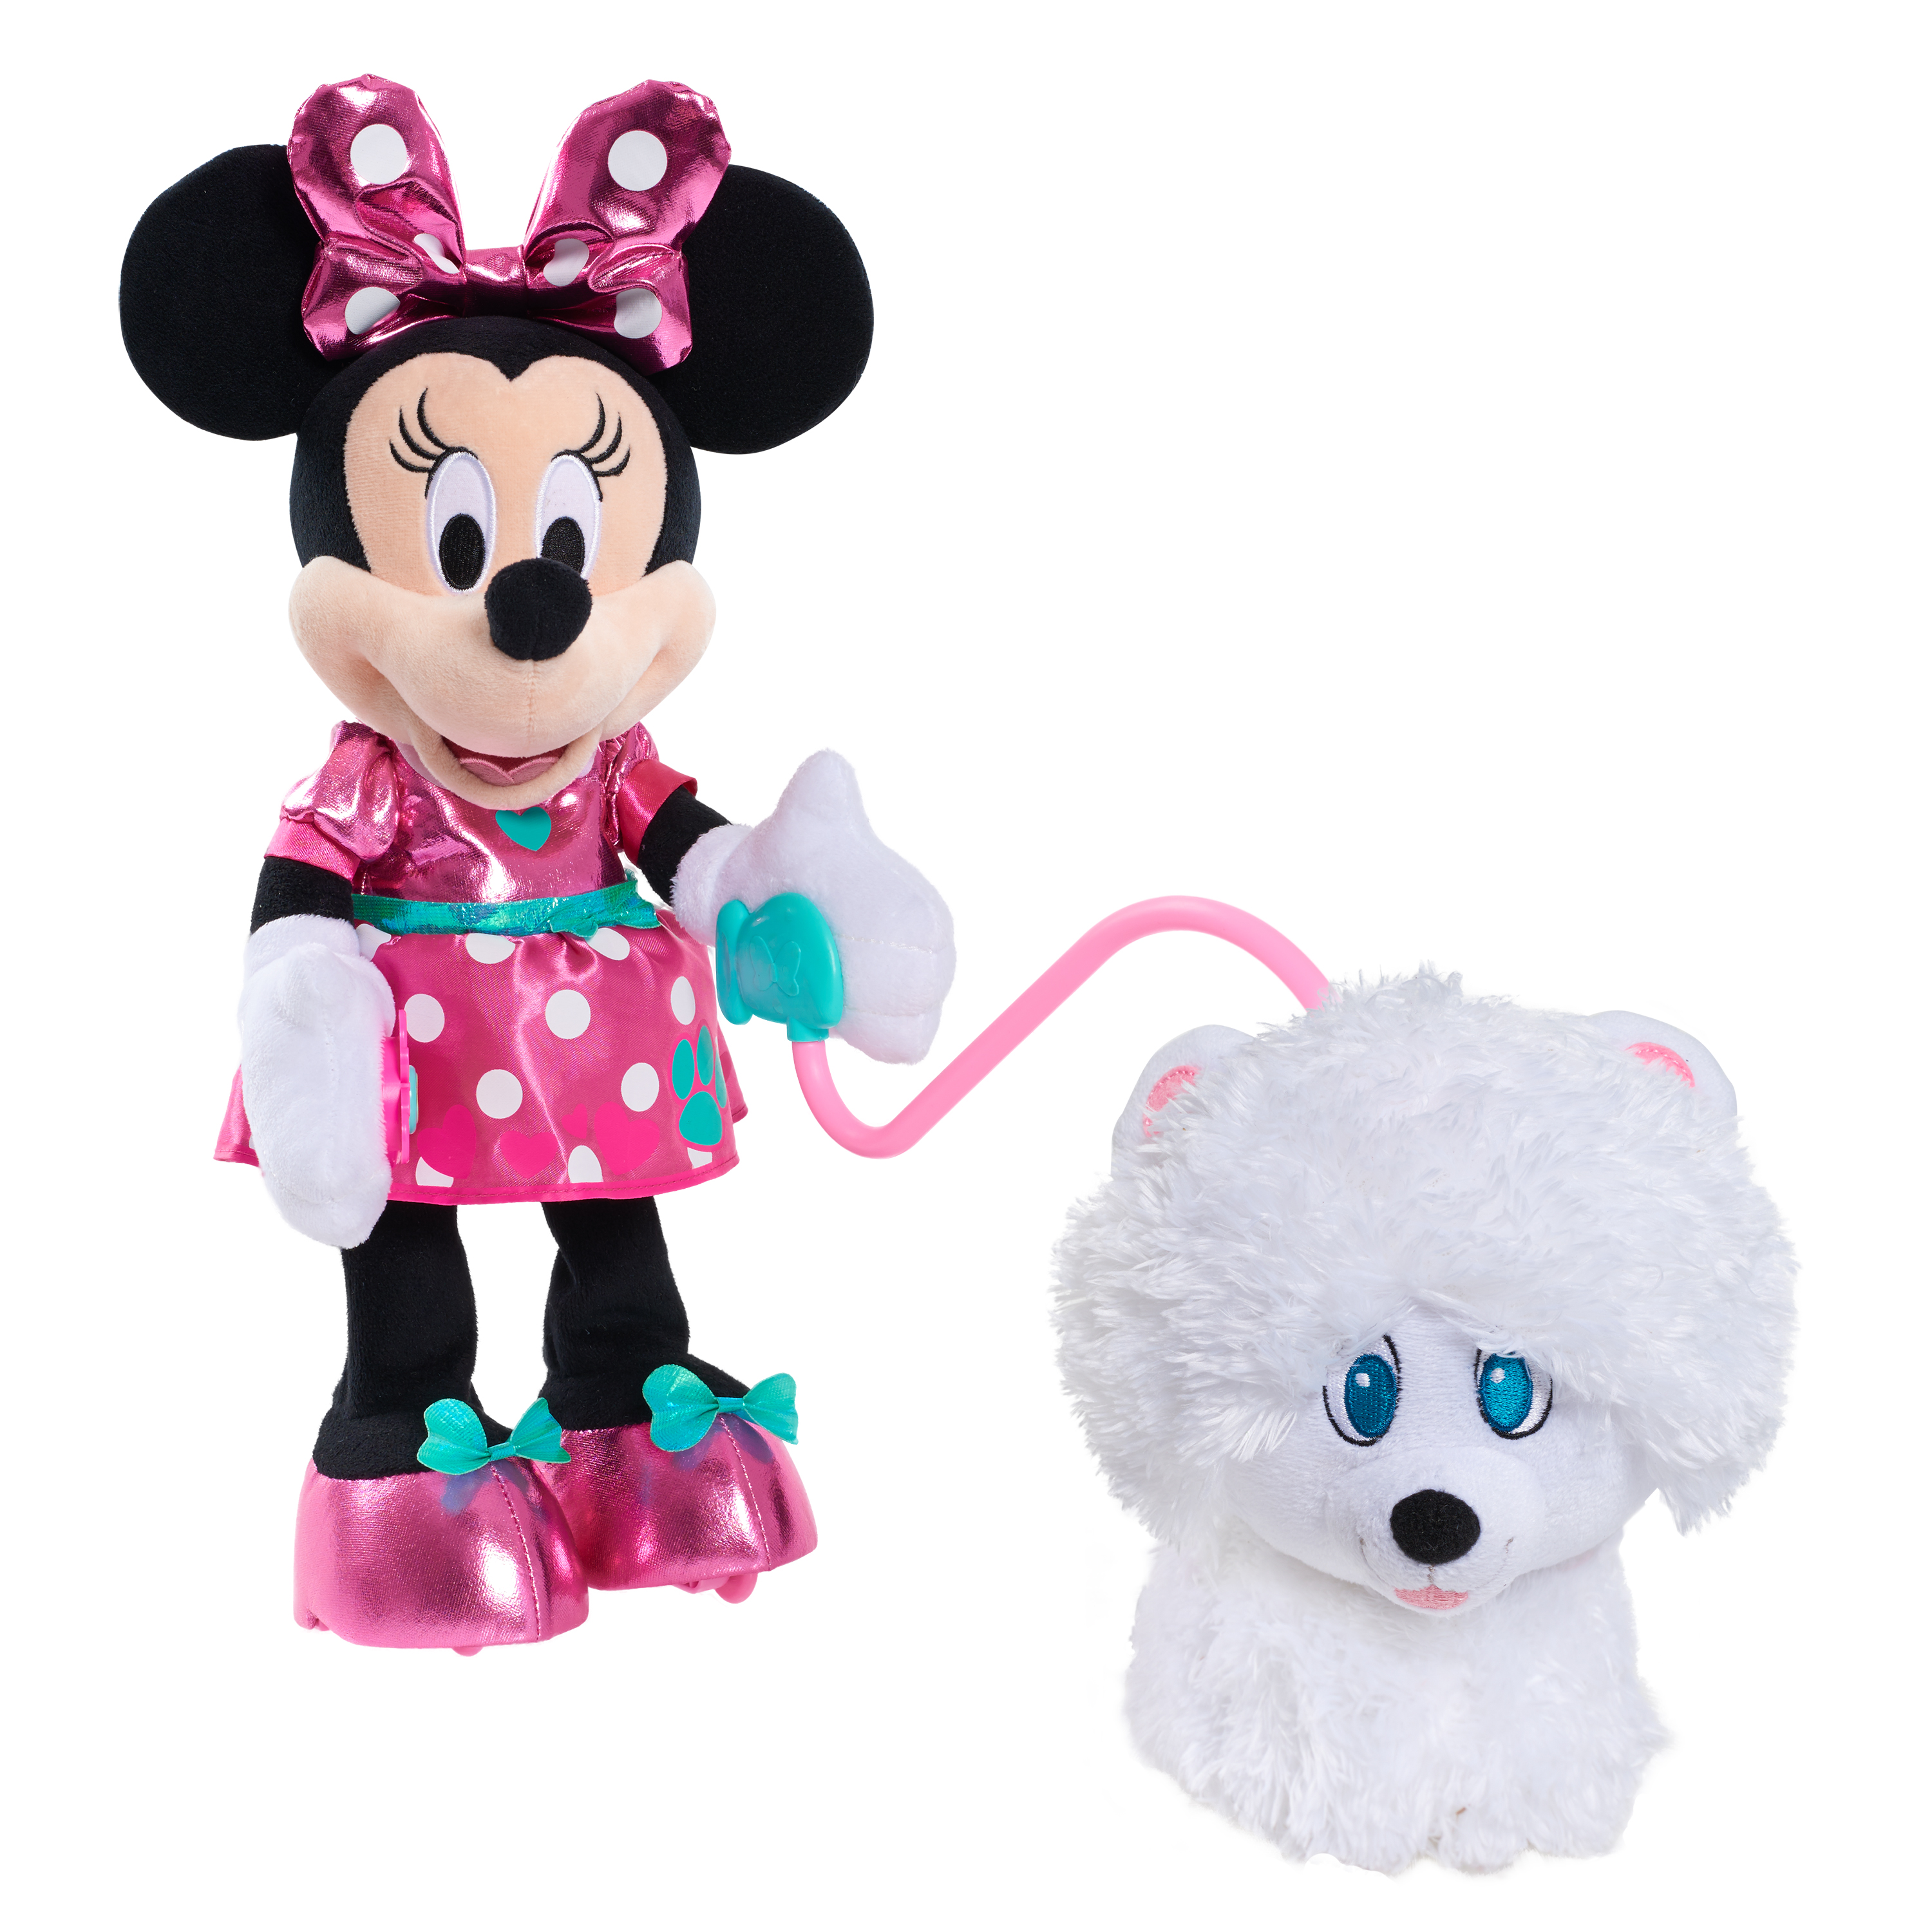 Minnie's Walk & Play Puppy Feature Plush by Just Play